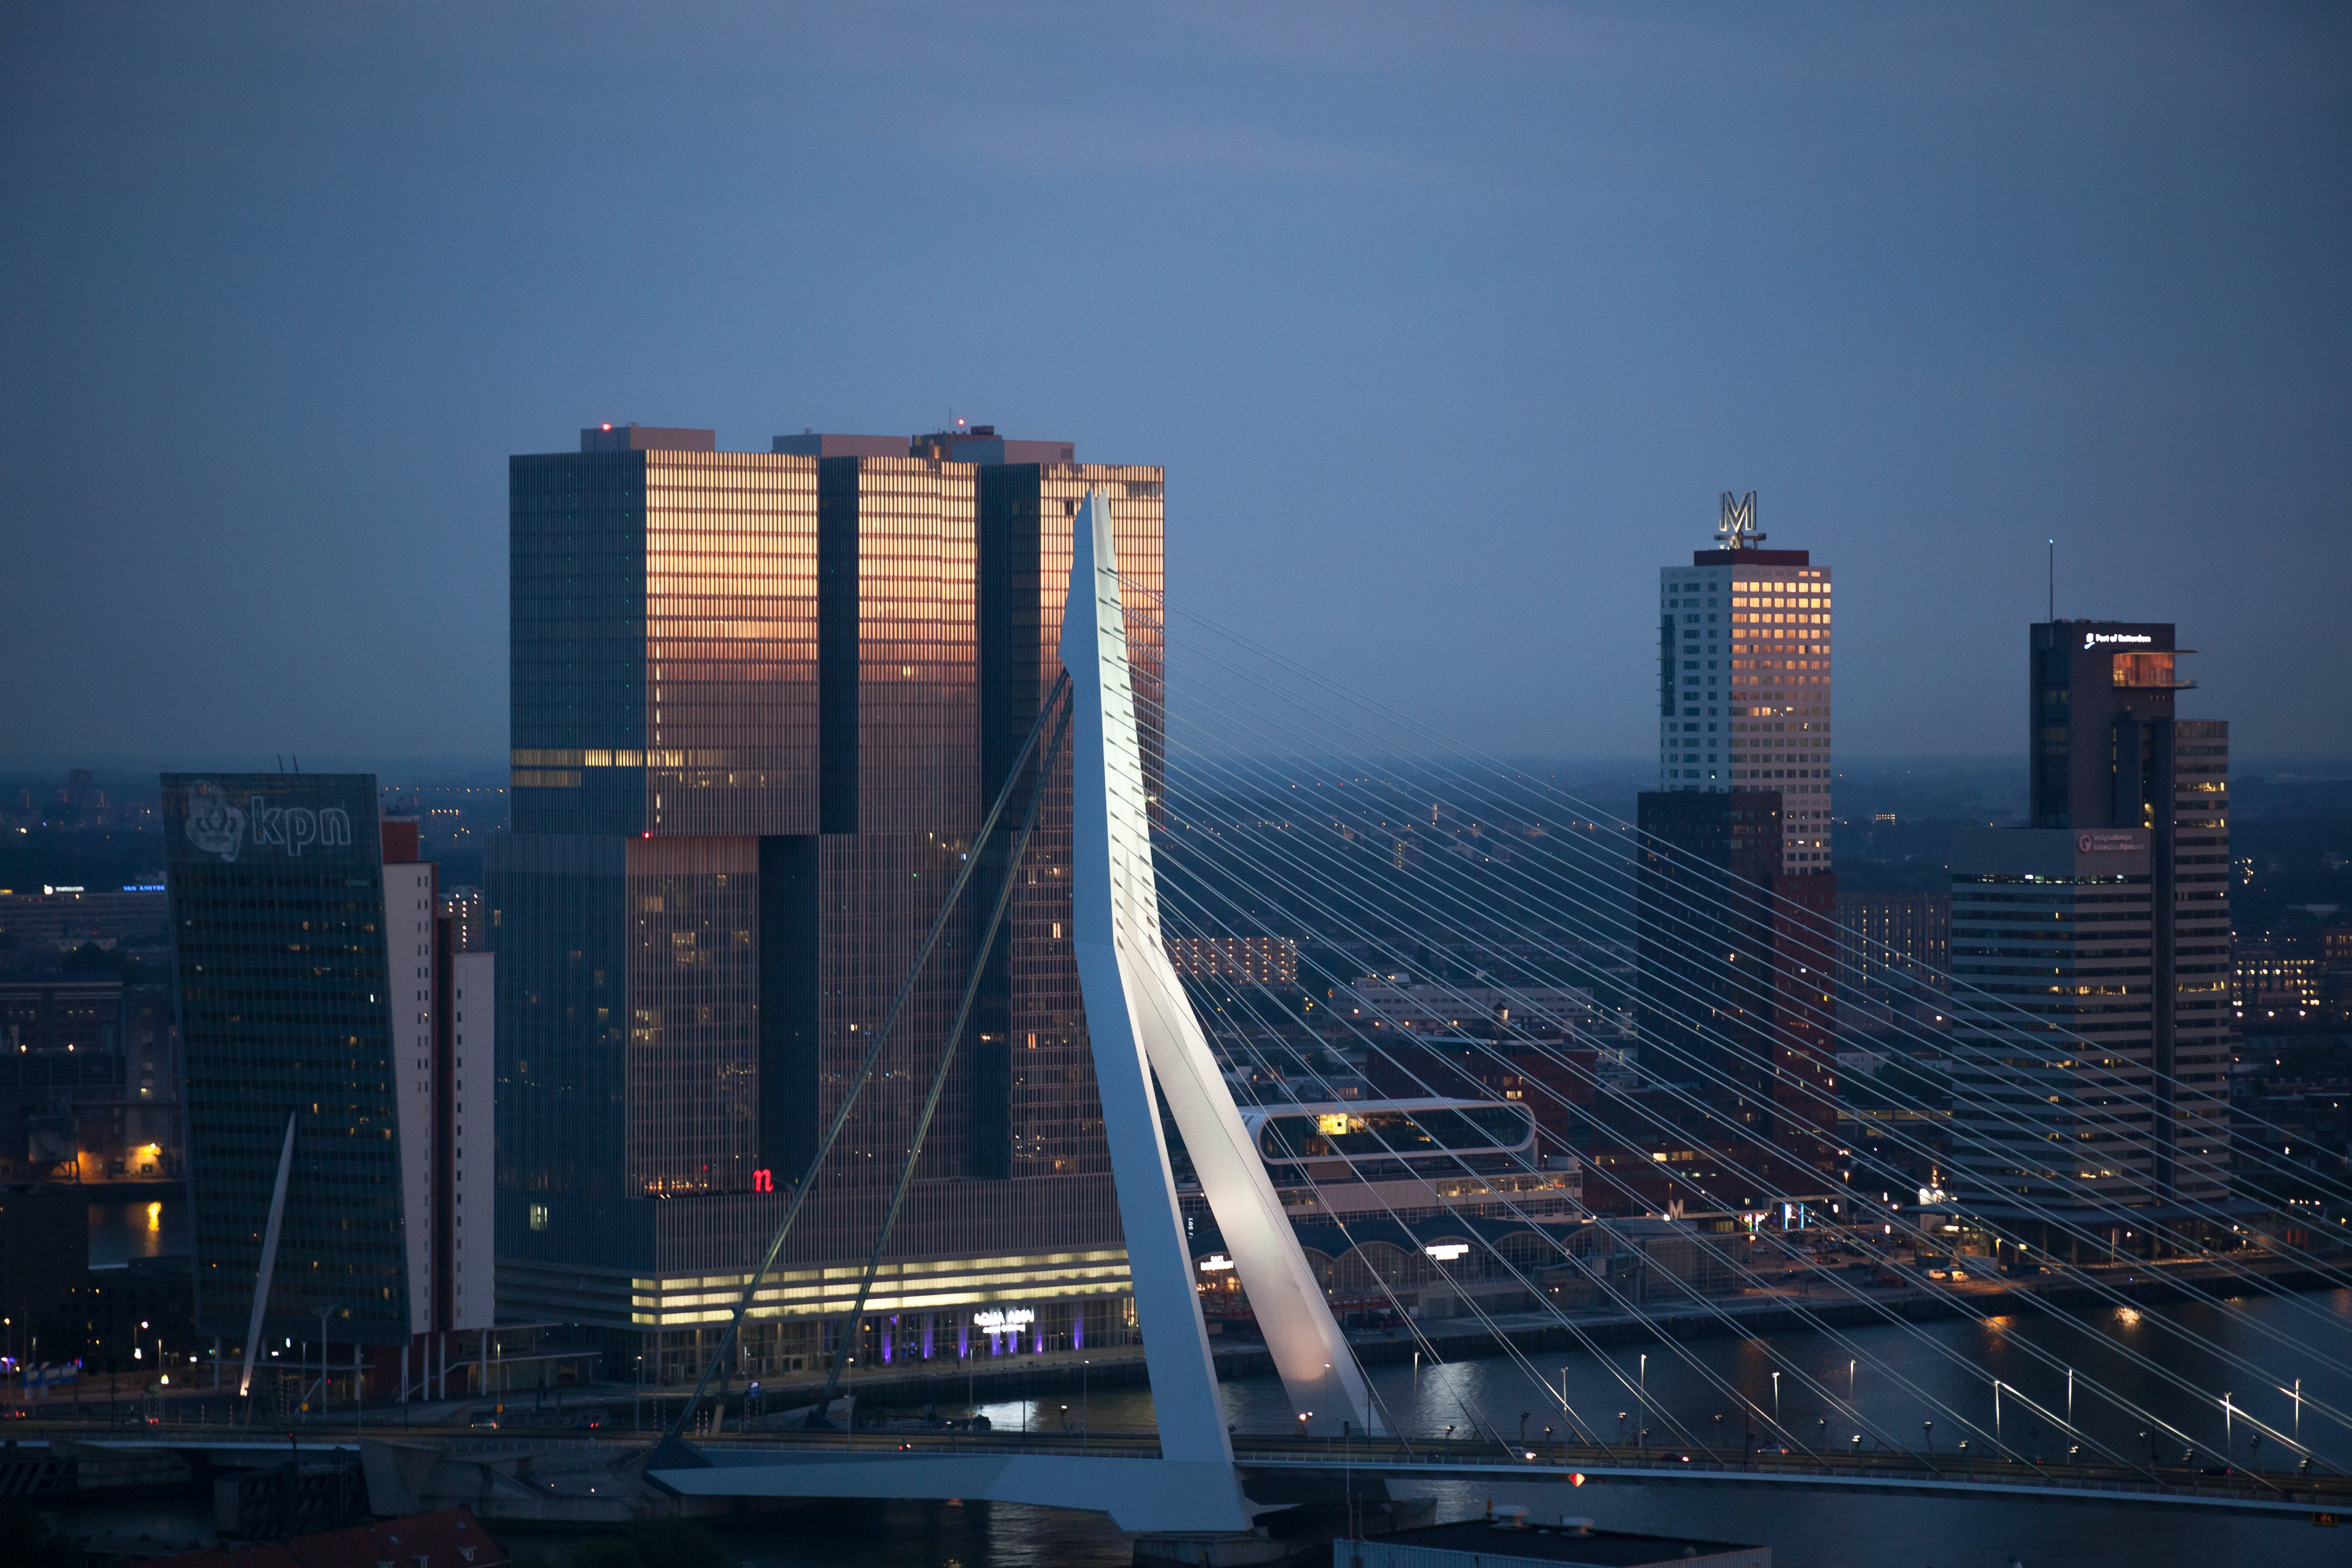 A bridge connecting two shores of a river in Rotterdam with high-rises on the bank